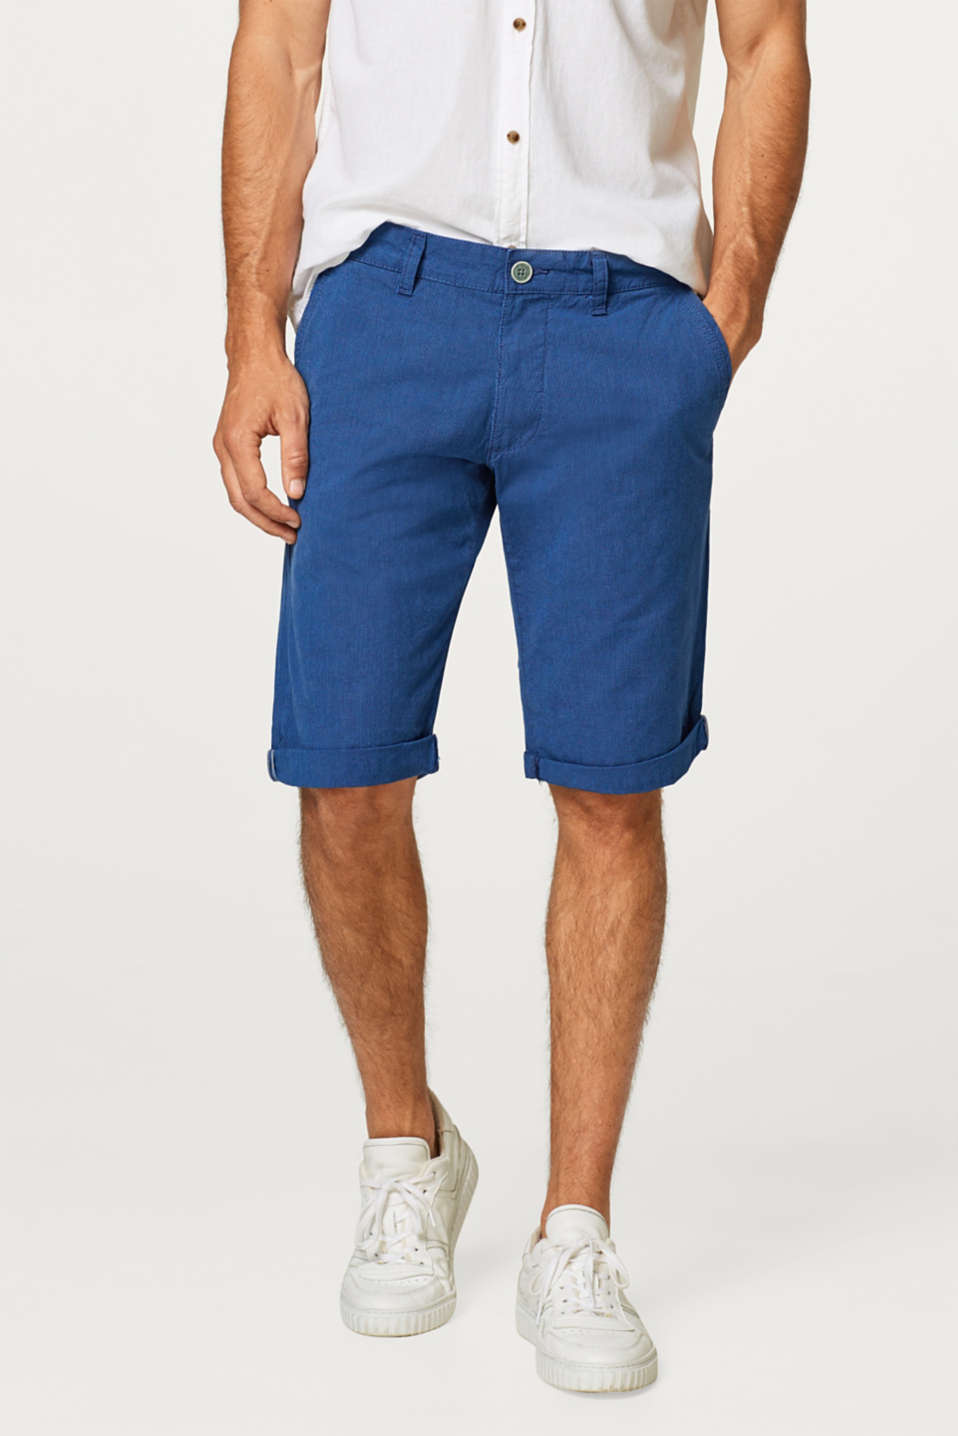 Esprit - Finely striped Bermuda shorts, made of cotton